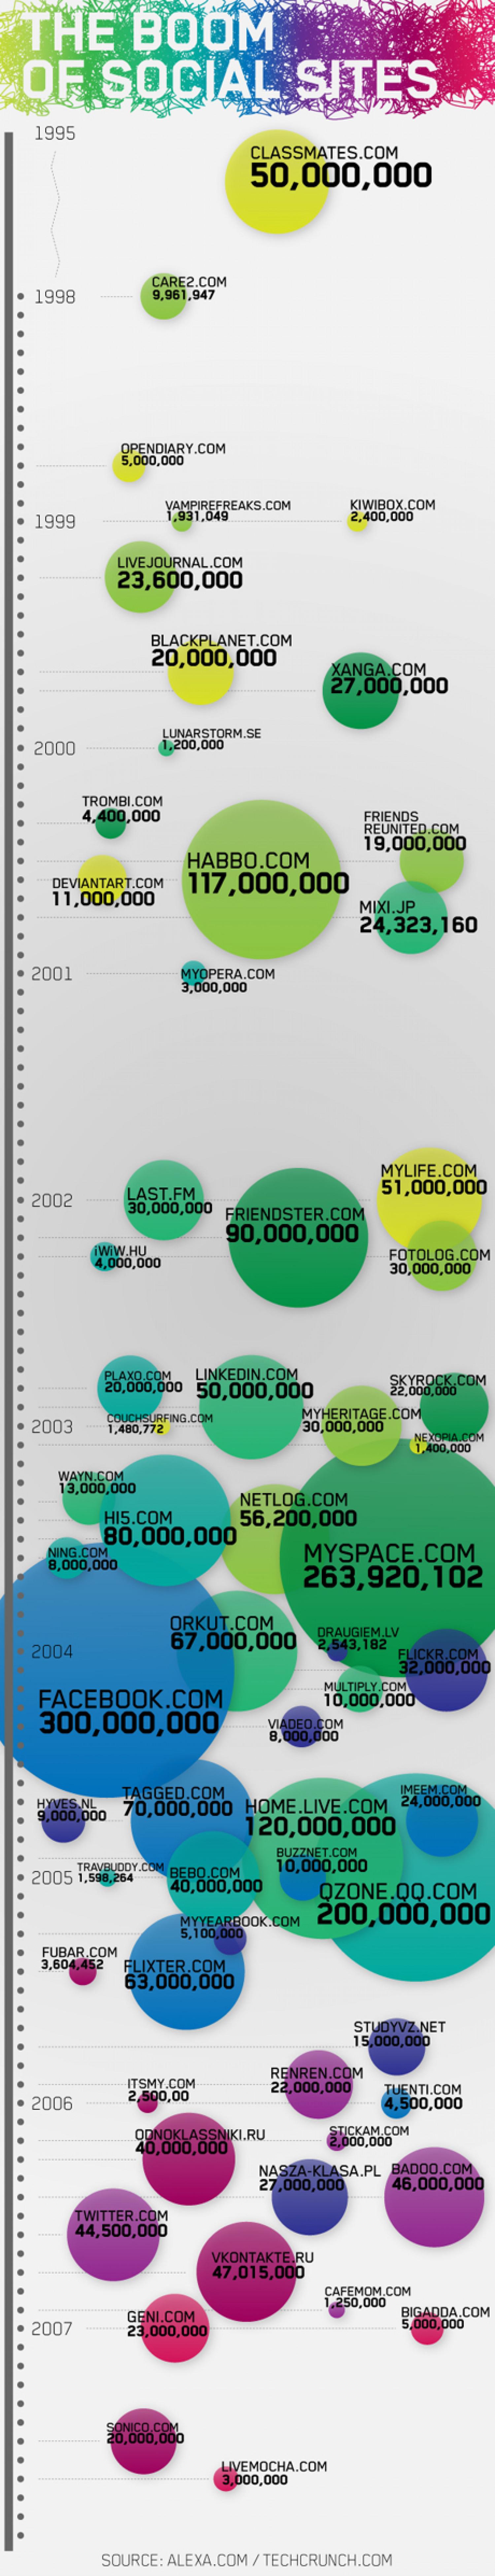 The Boom of Social Sites Infographic